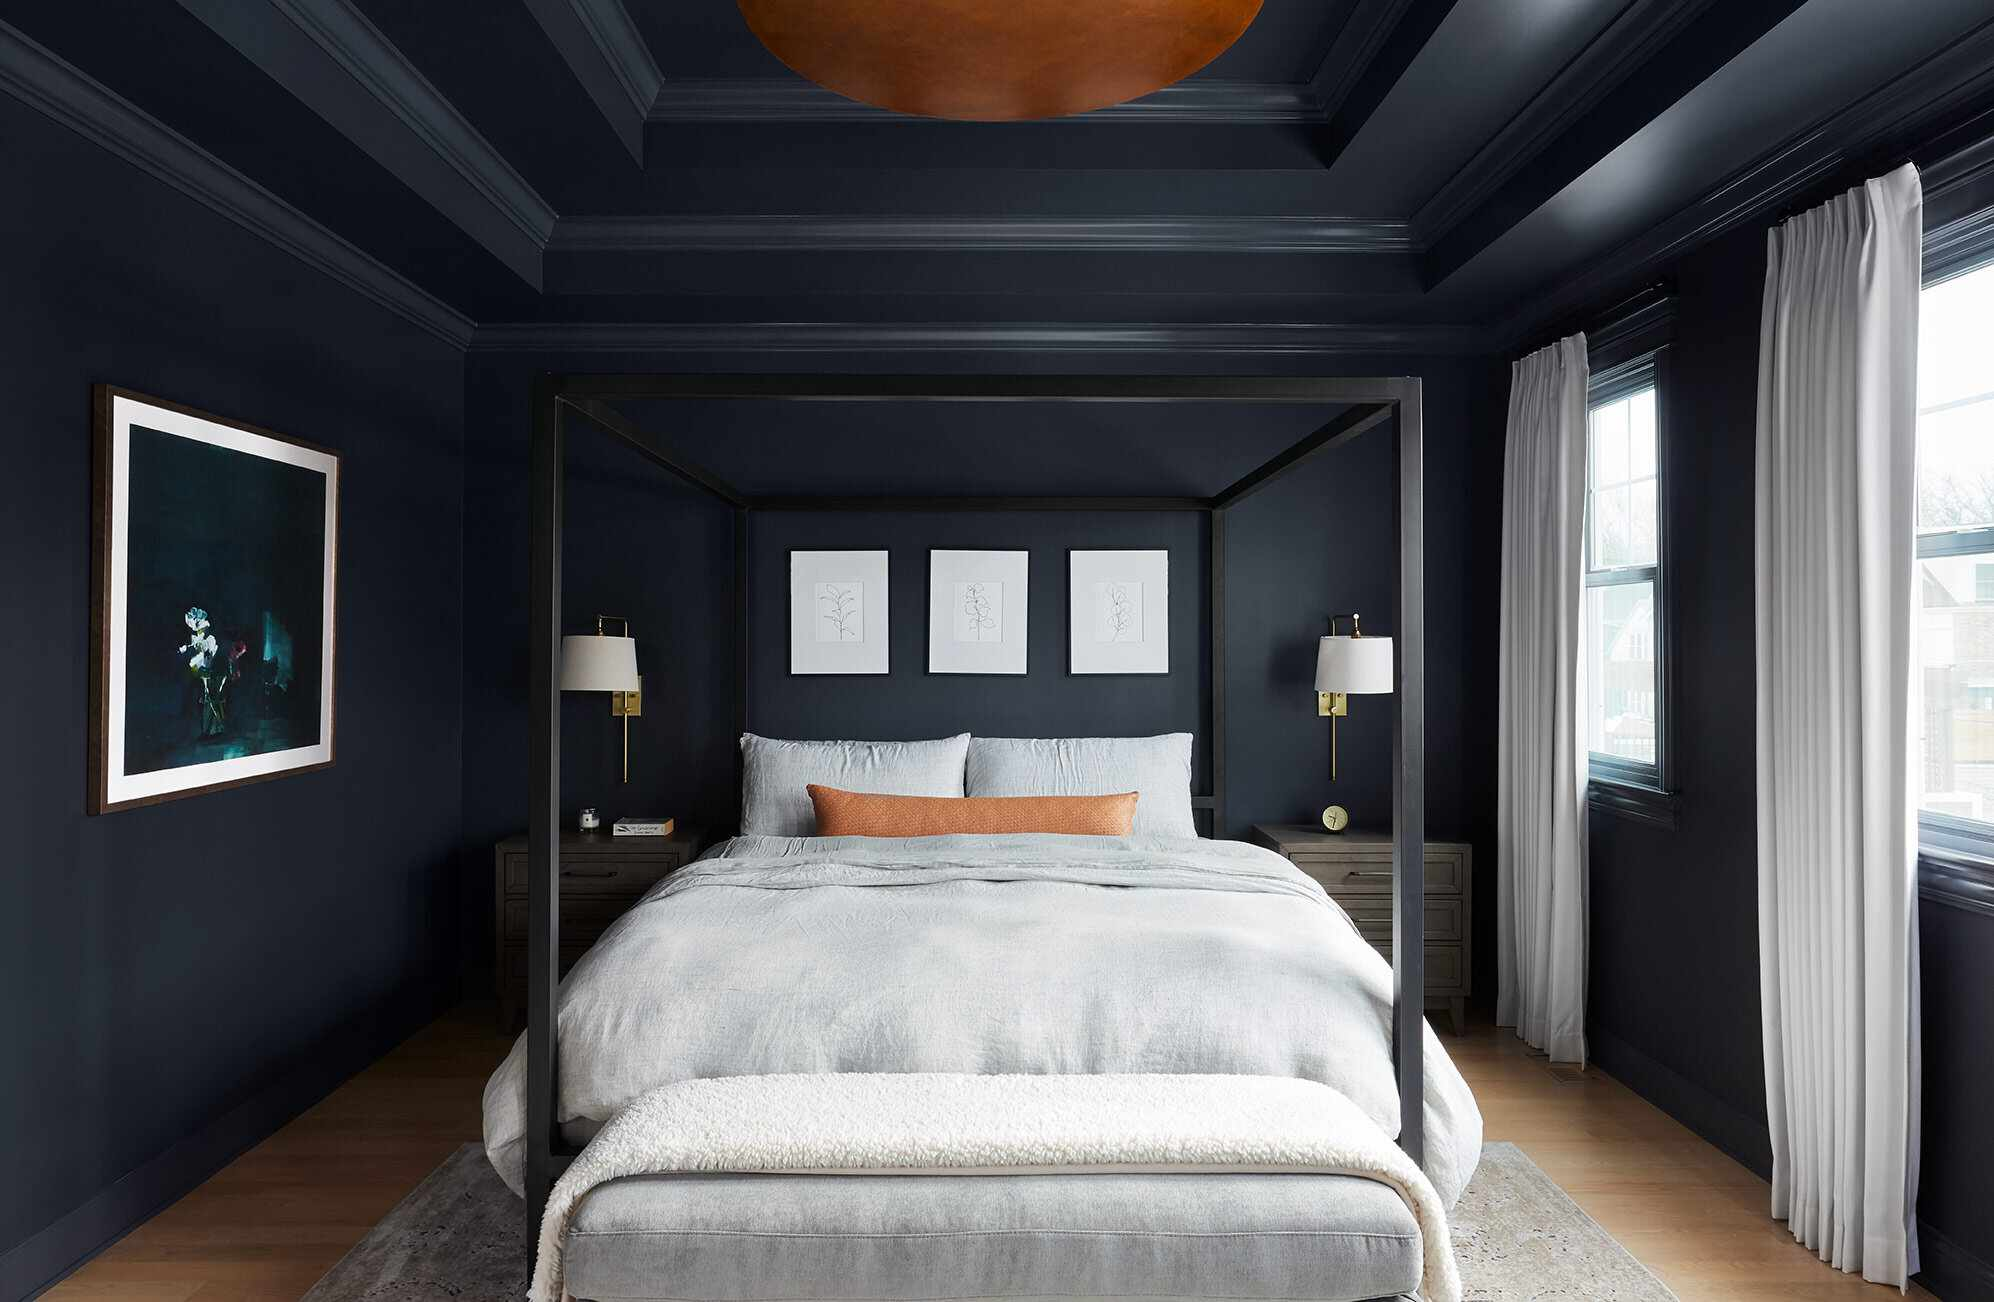 Bedroom with navy blue paint